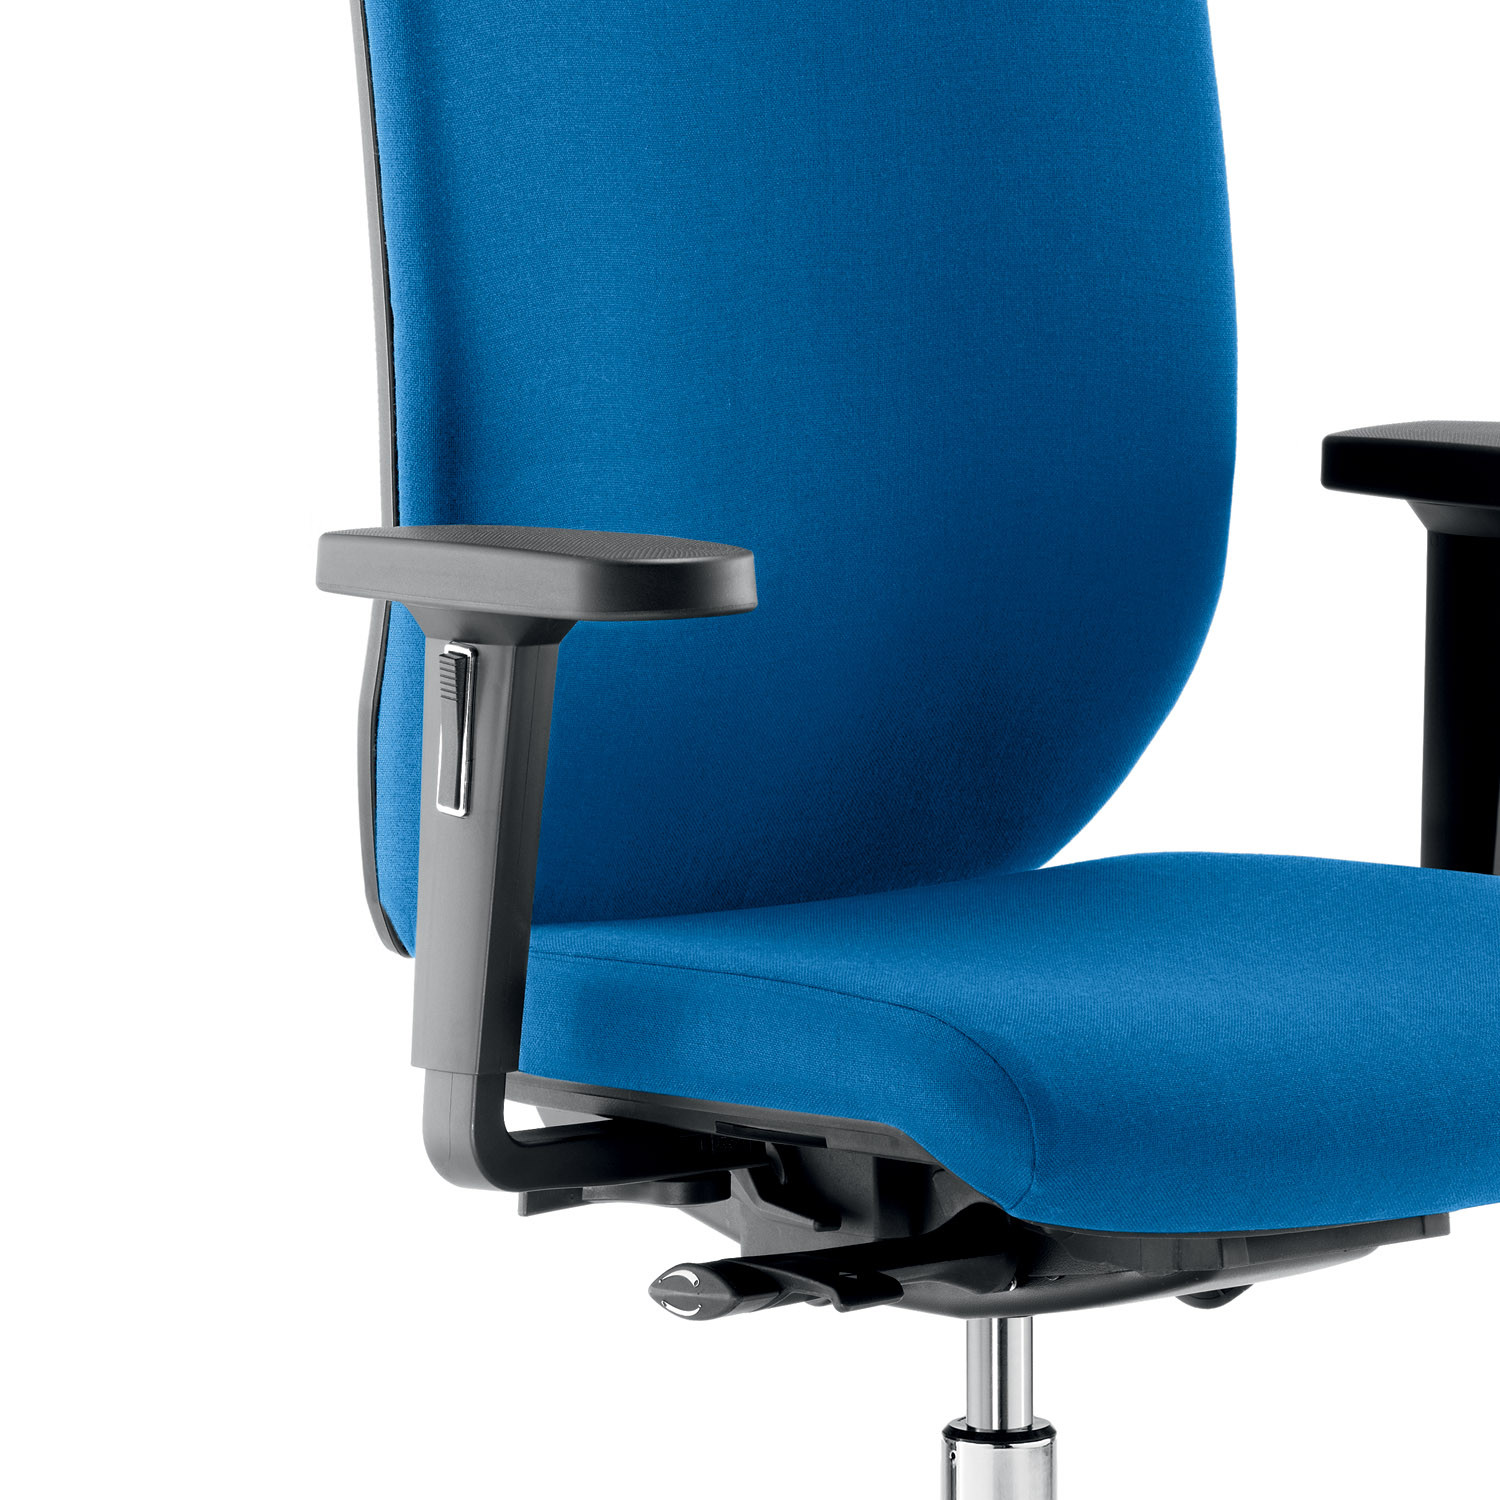 Bionic Ergonomic Desk Chair with Lumbar Support